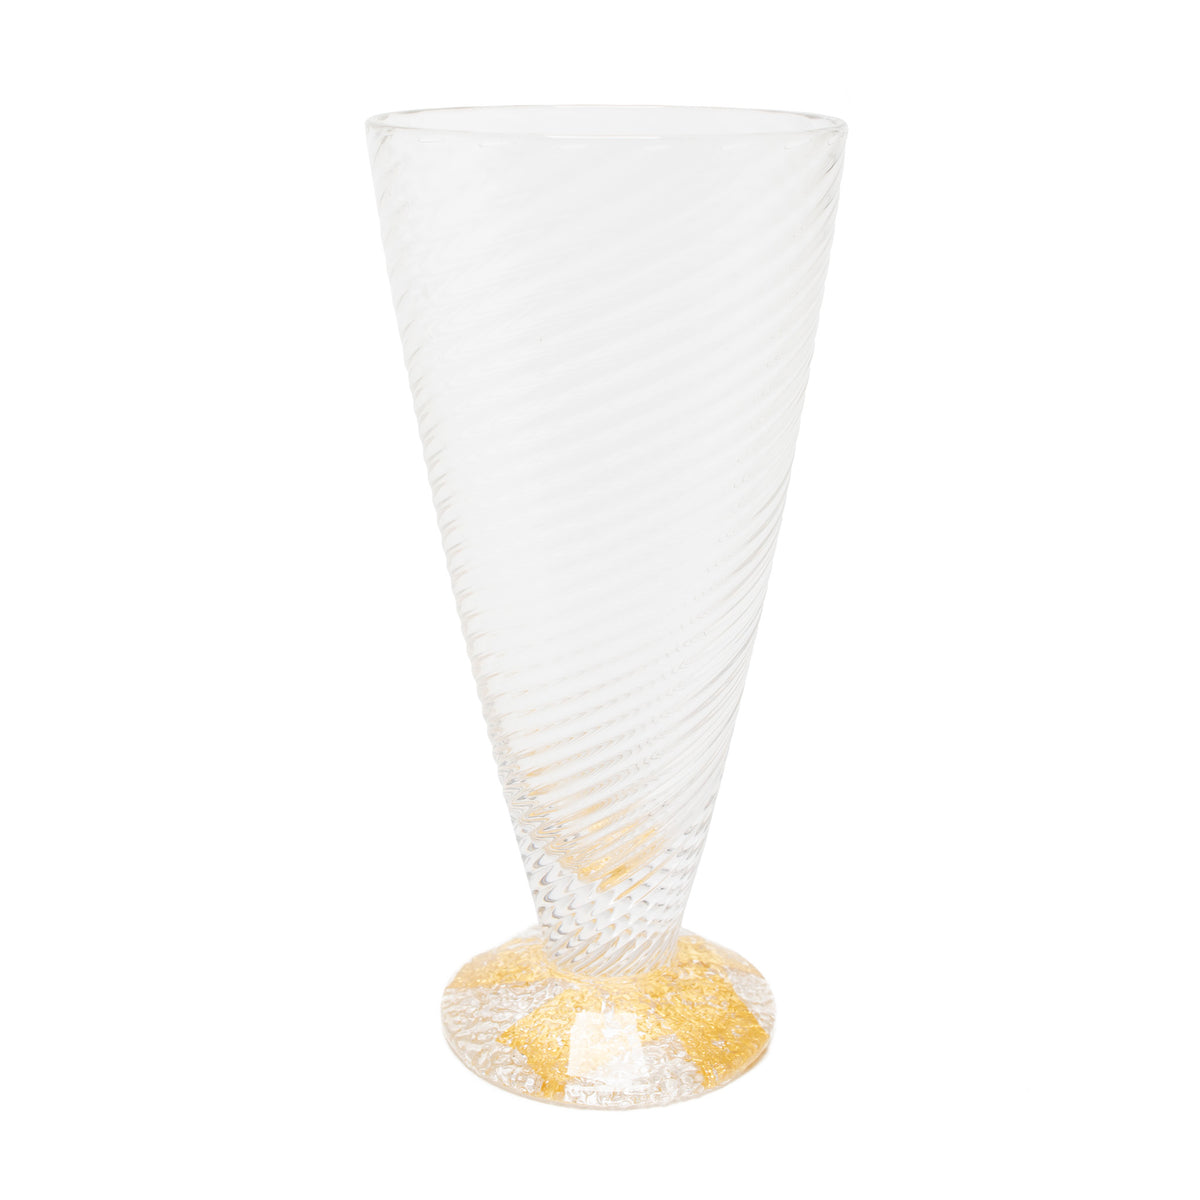 Wine Goblet - Handblown Glass with Gold Leaf